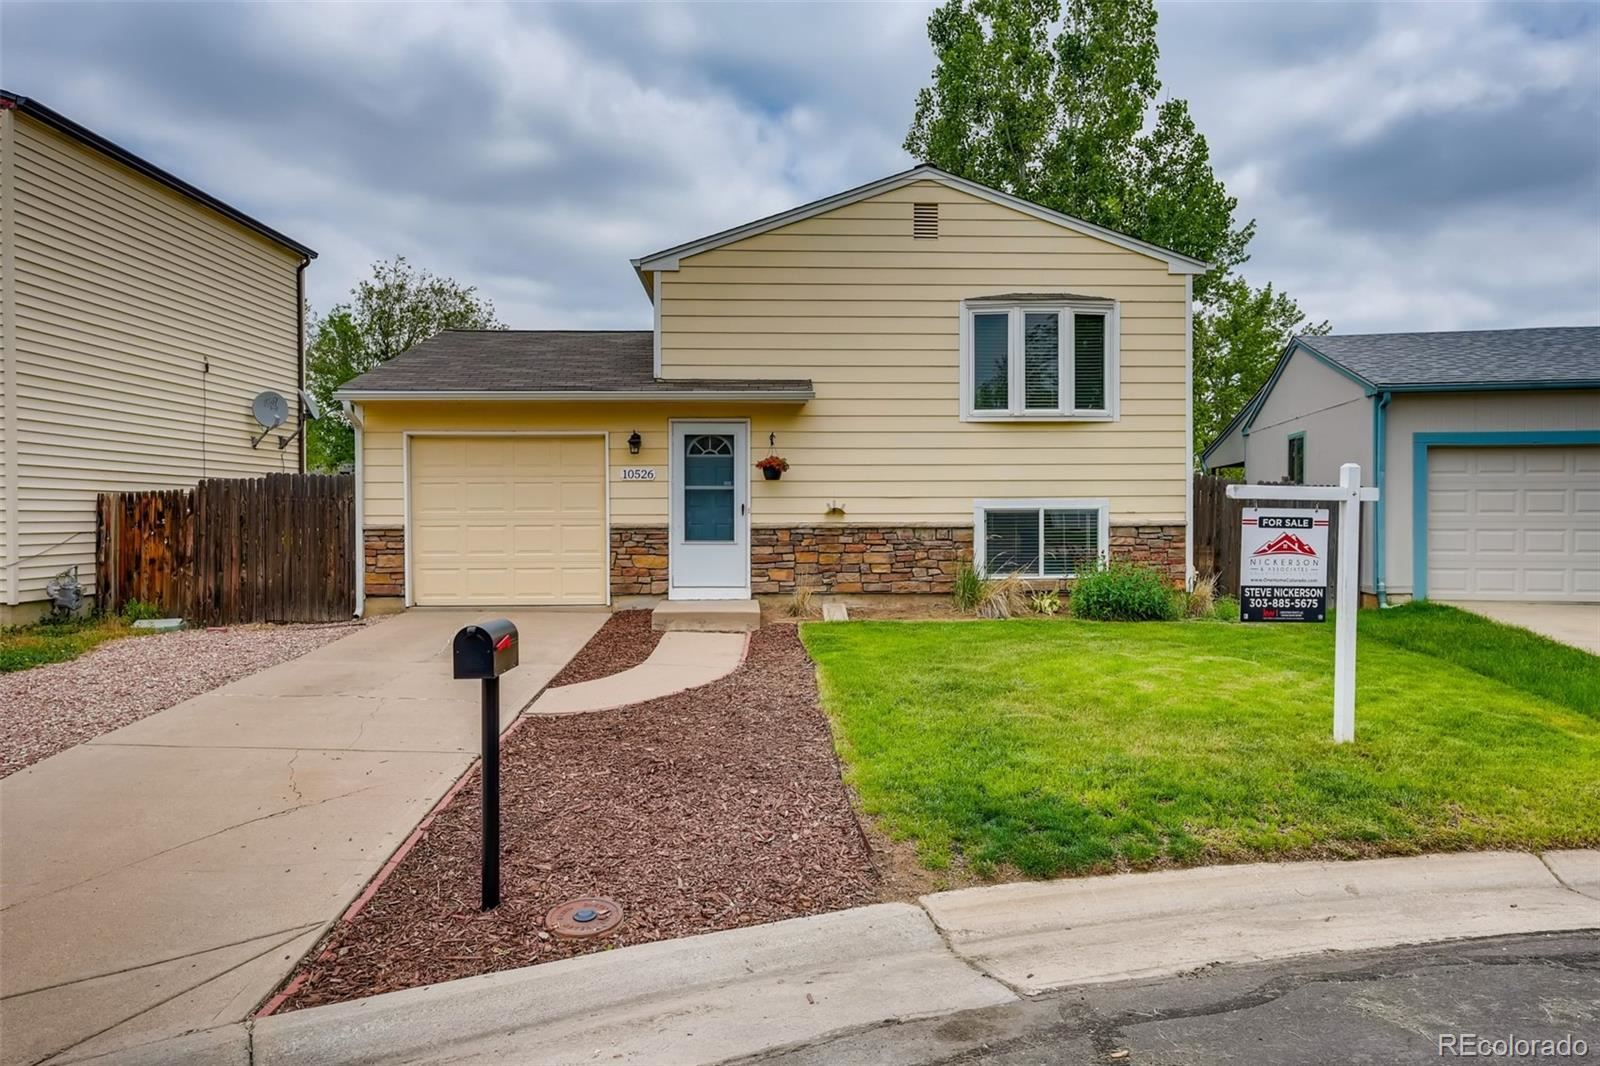 10526 W 106th Place, Westminster, CO 80021 - #: 4579695